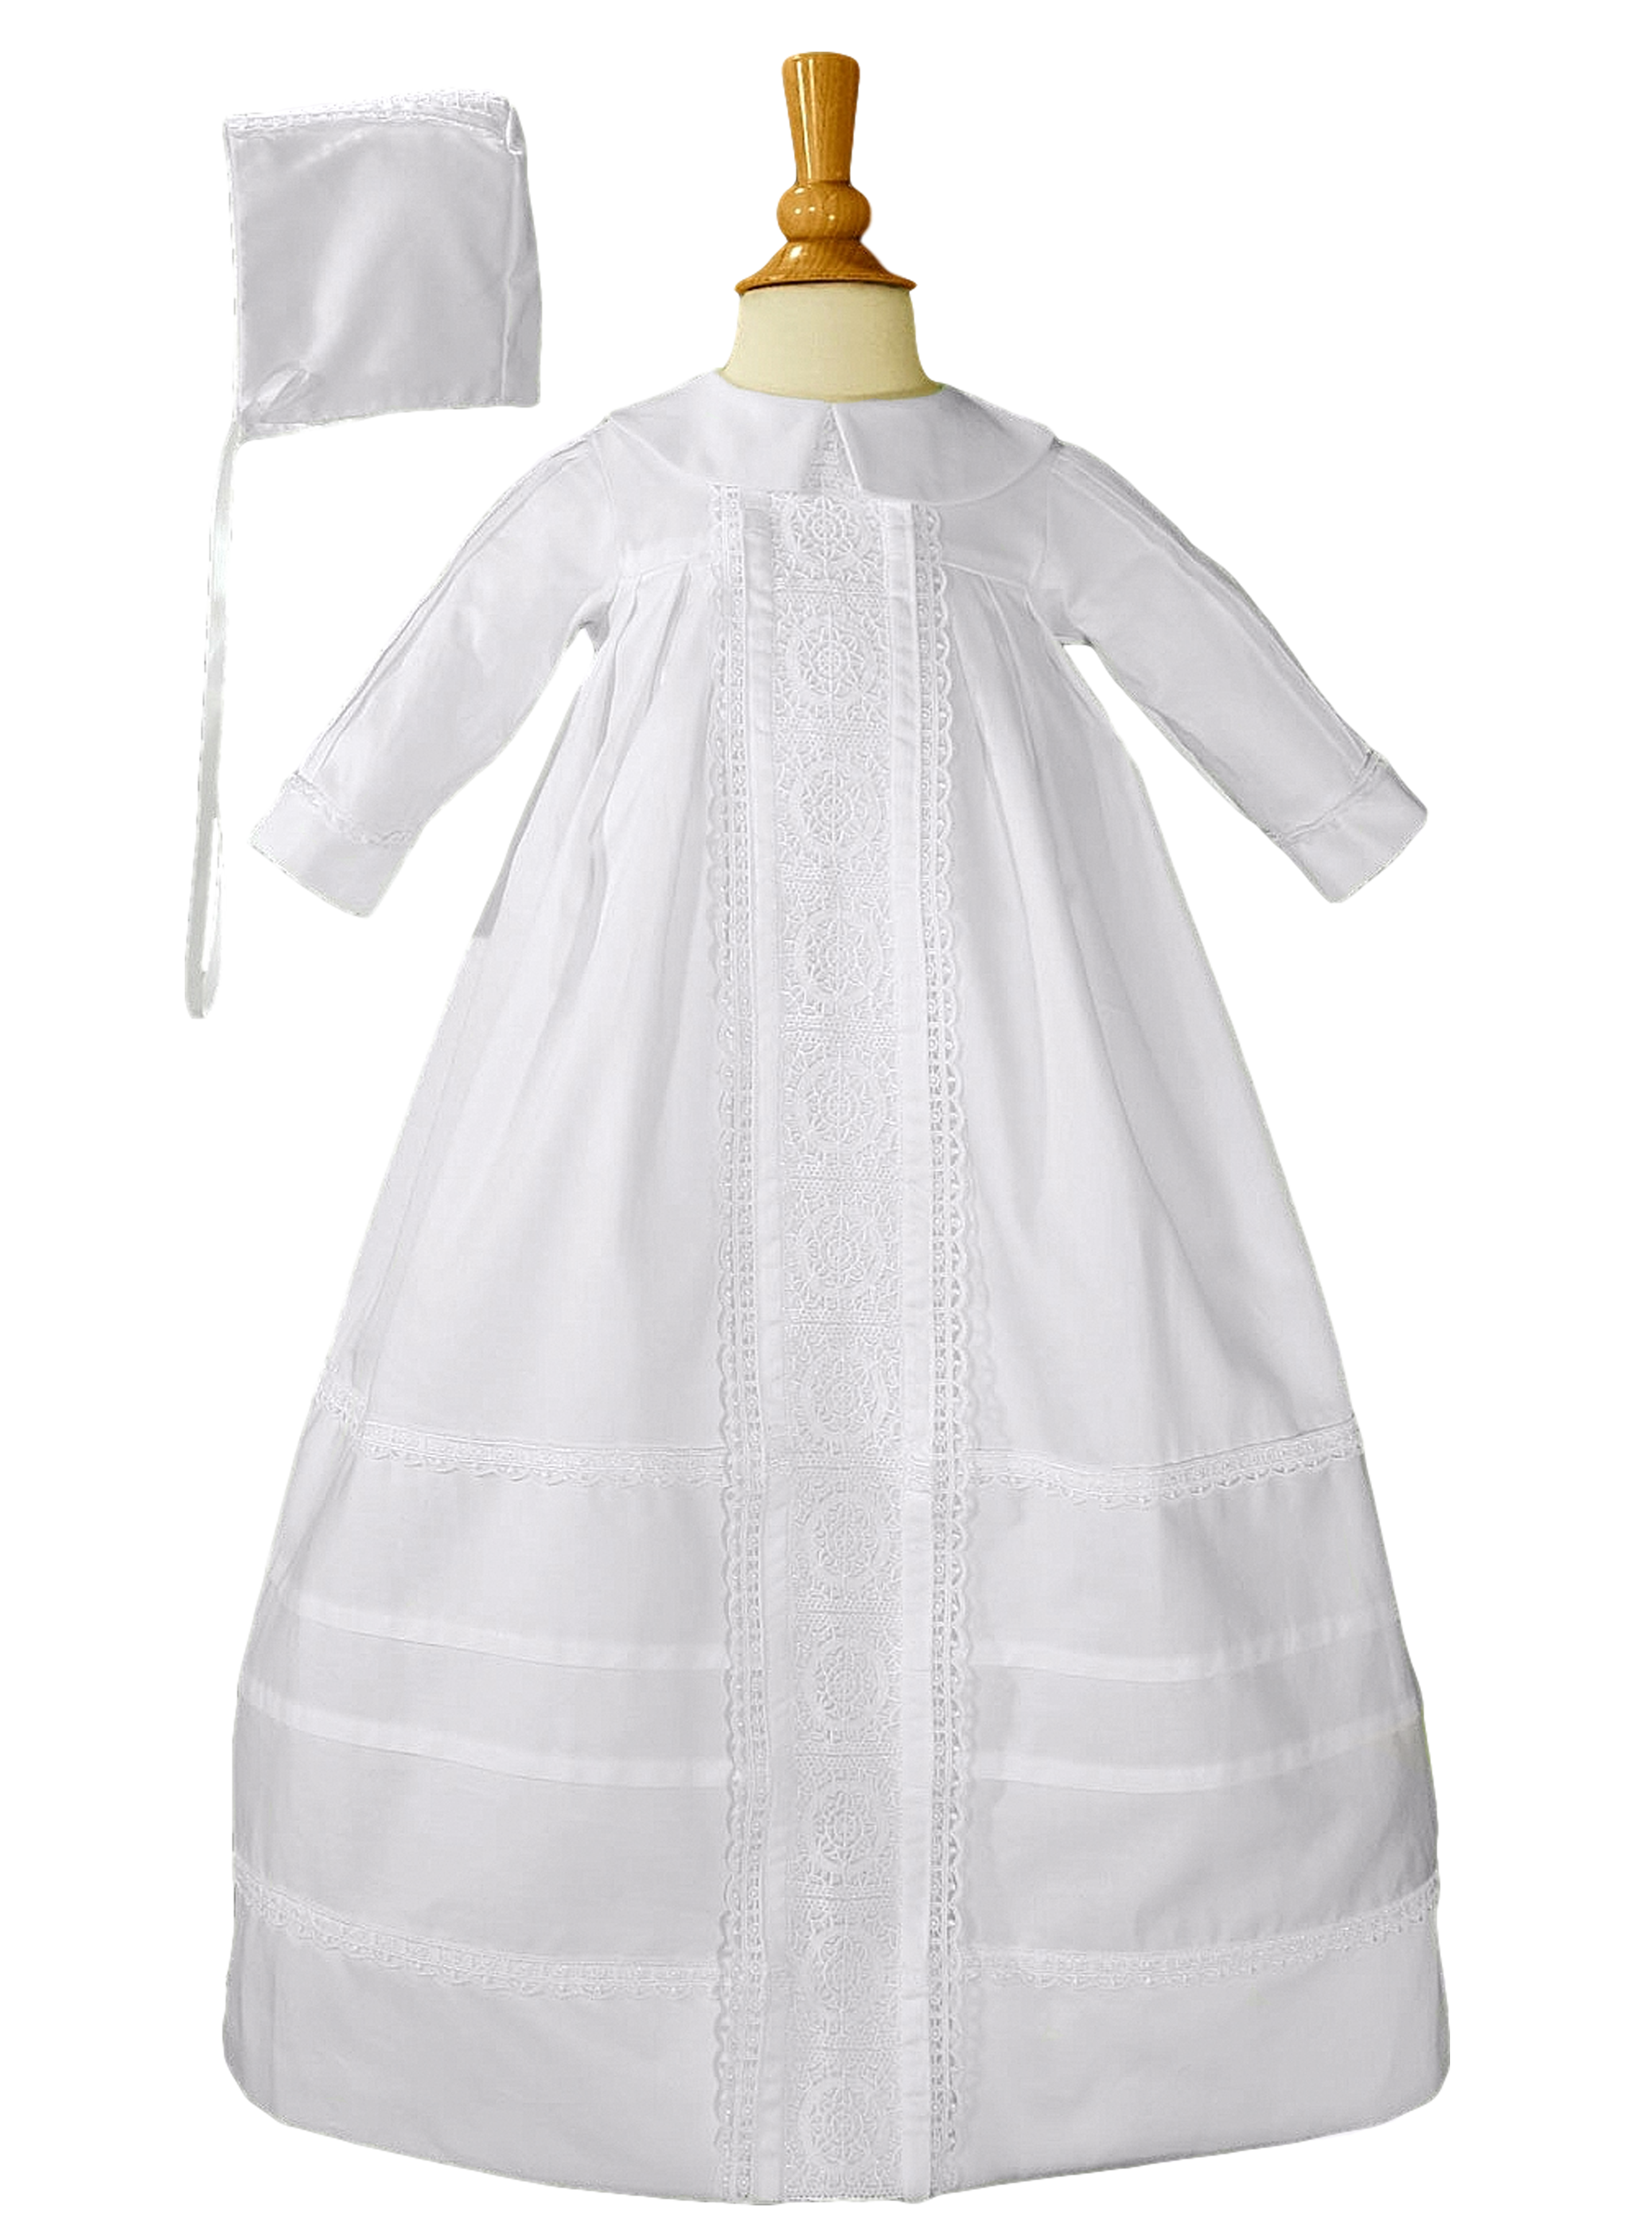 Baby Boys White Lace Bishop Christening Baptism Outfit Gown 3-12M